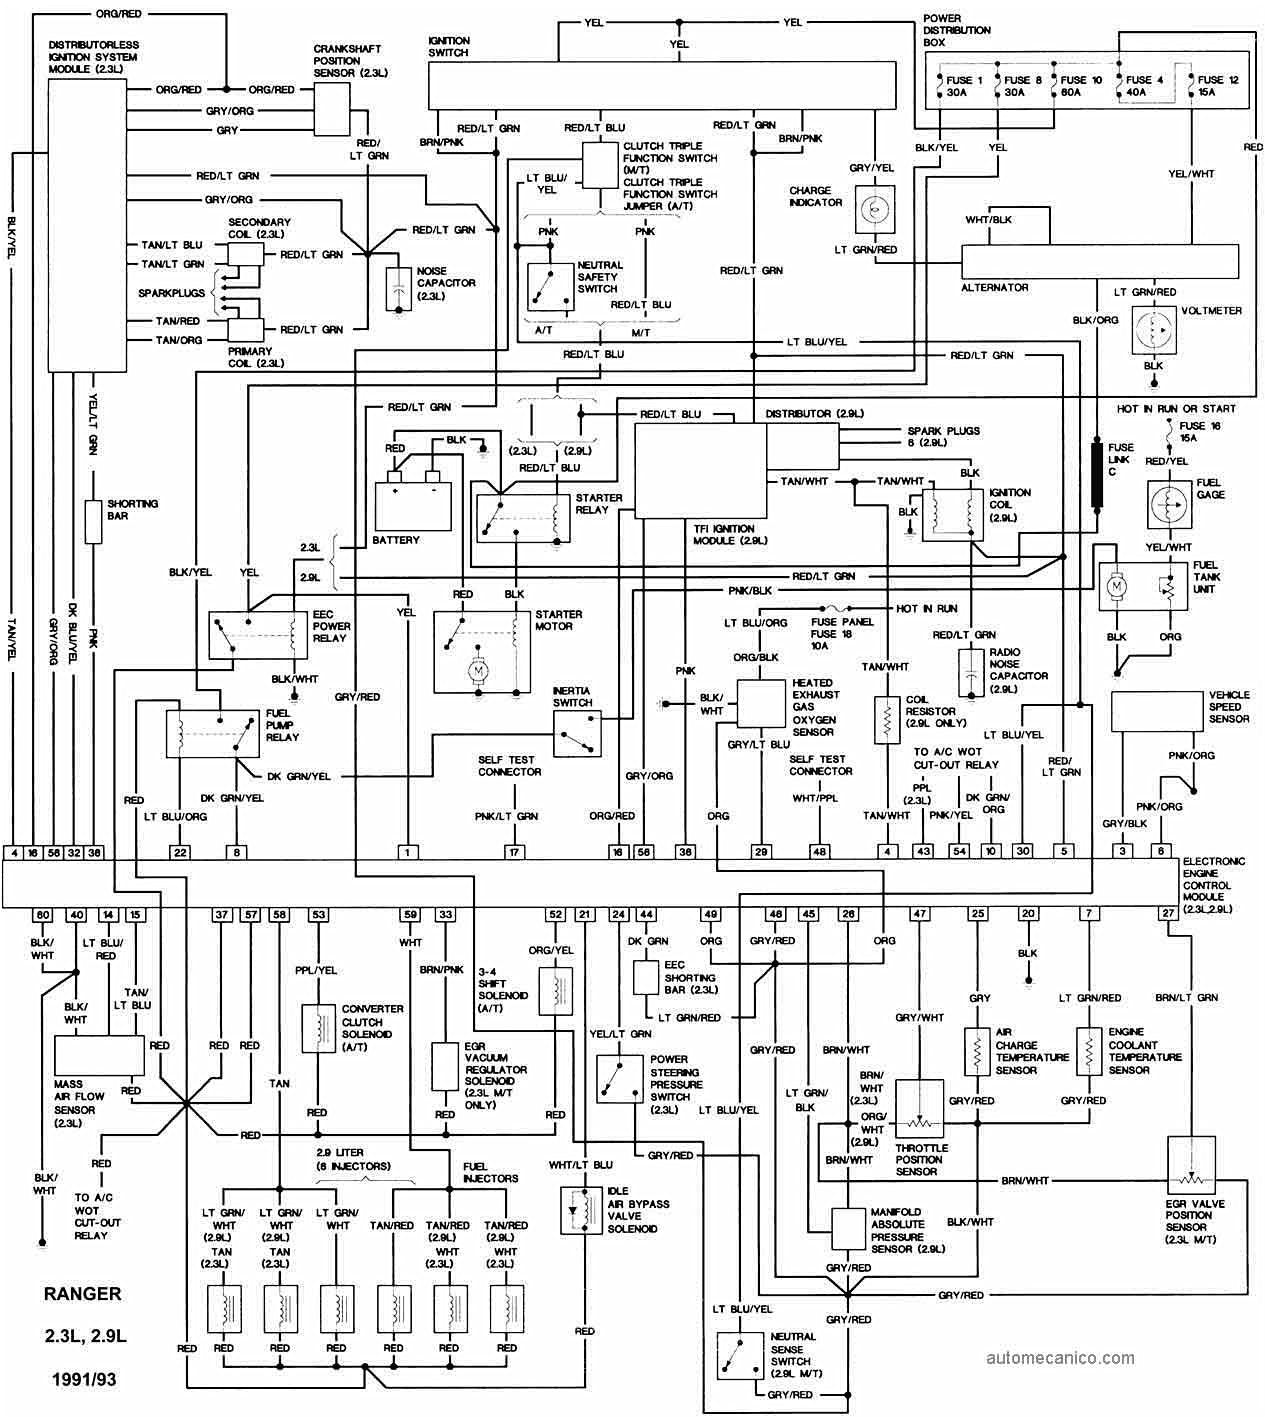 1999 ford explorer 4 0 engine diagram wiring diagram used 1999 ford explorer spark plugs diagram